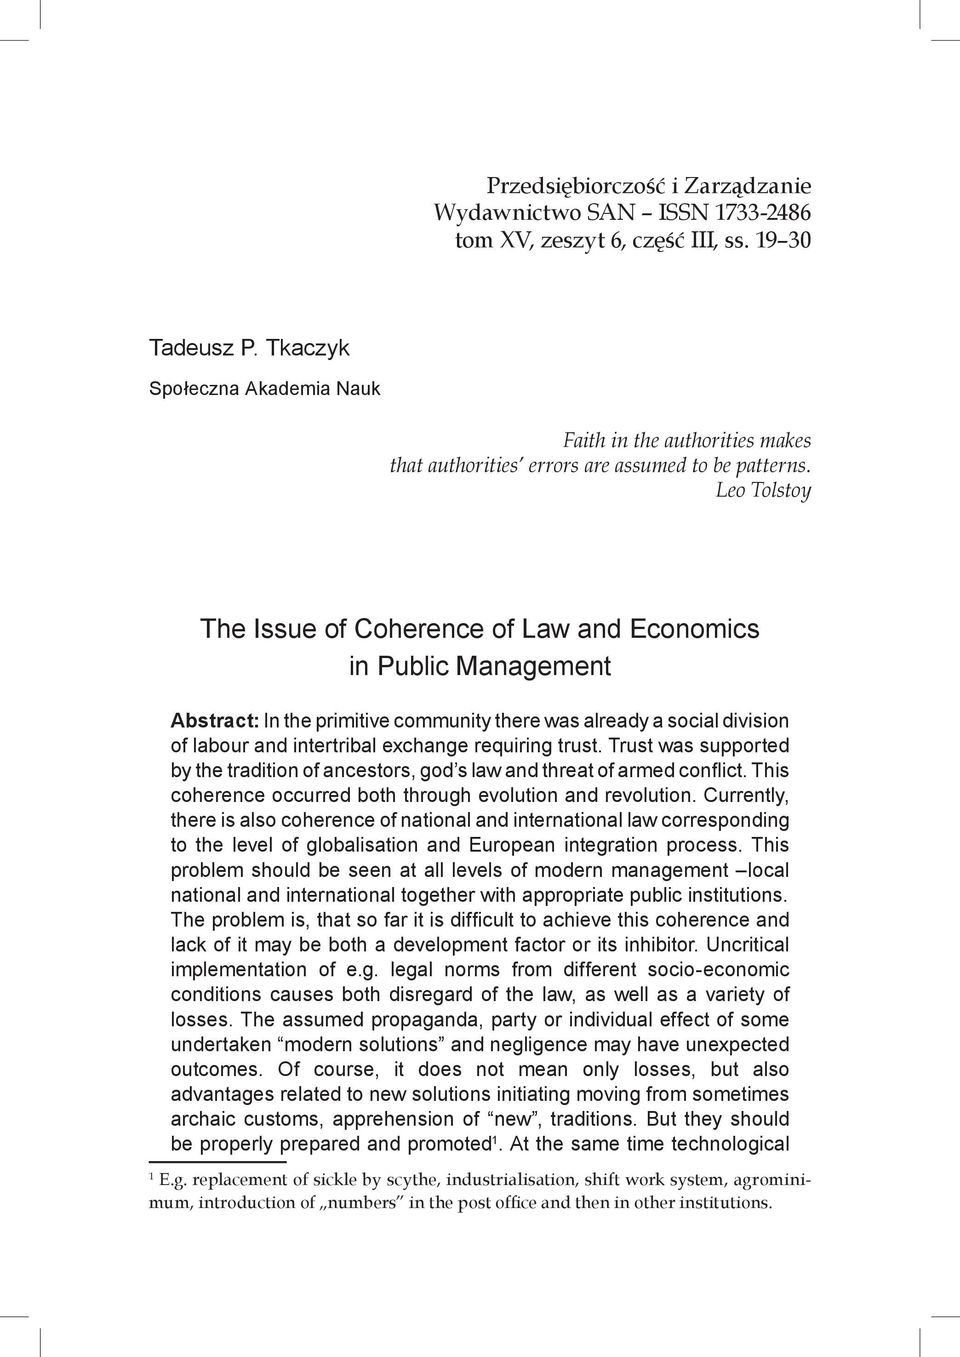 Leo Tolstoy The Issue of Coherence of Law and Economics in Public Management Abstract: In the primitive community there was already a social division of labour and intertribal exchange requiring